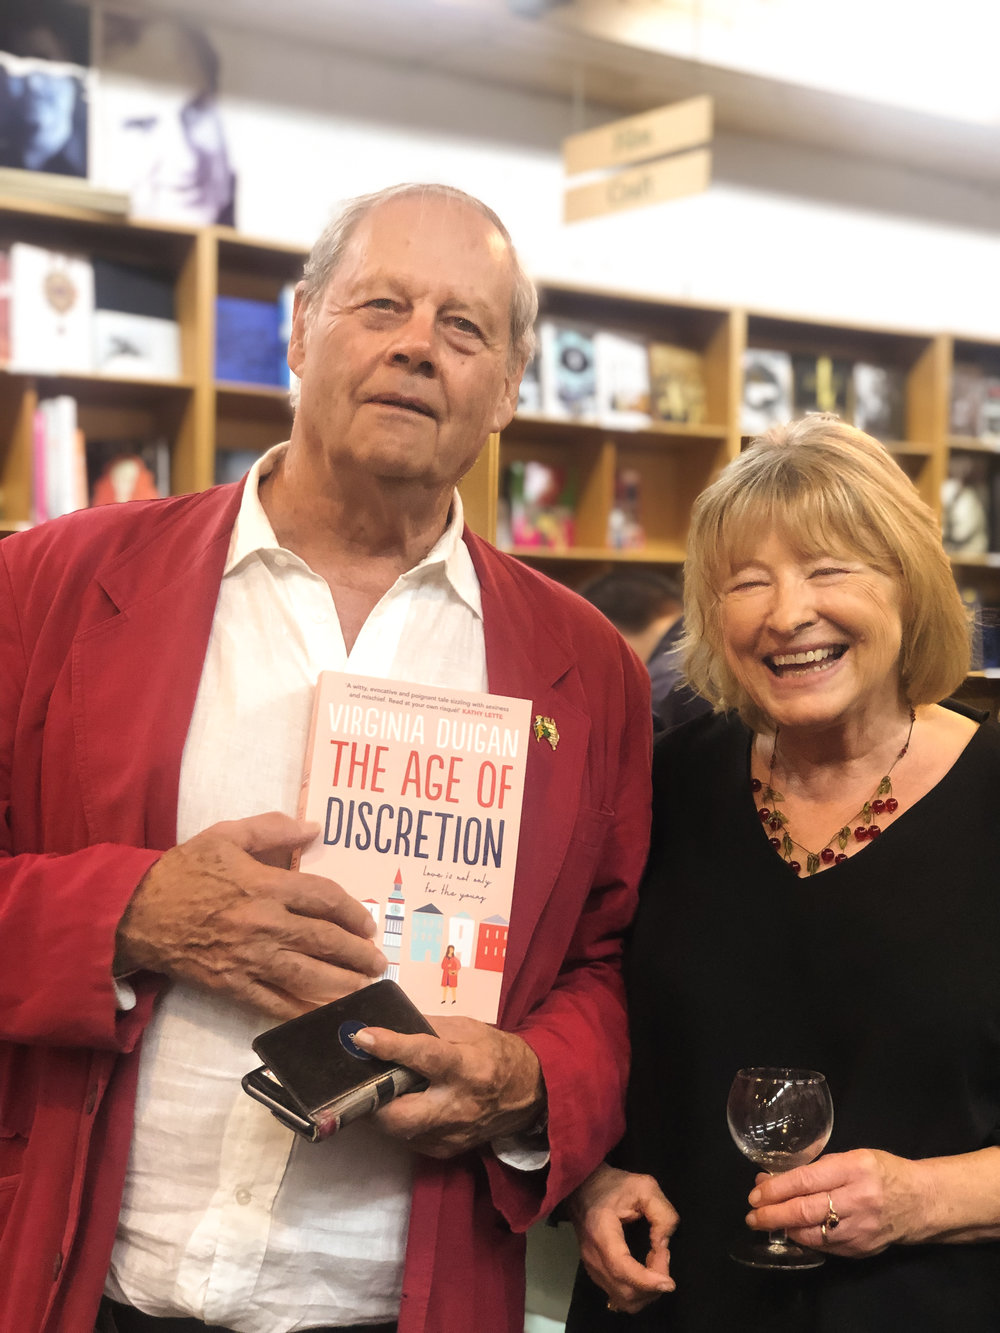 Bruce Beresford and Virginia Duigan